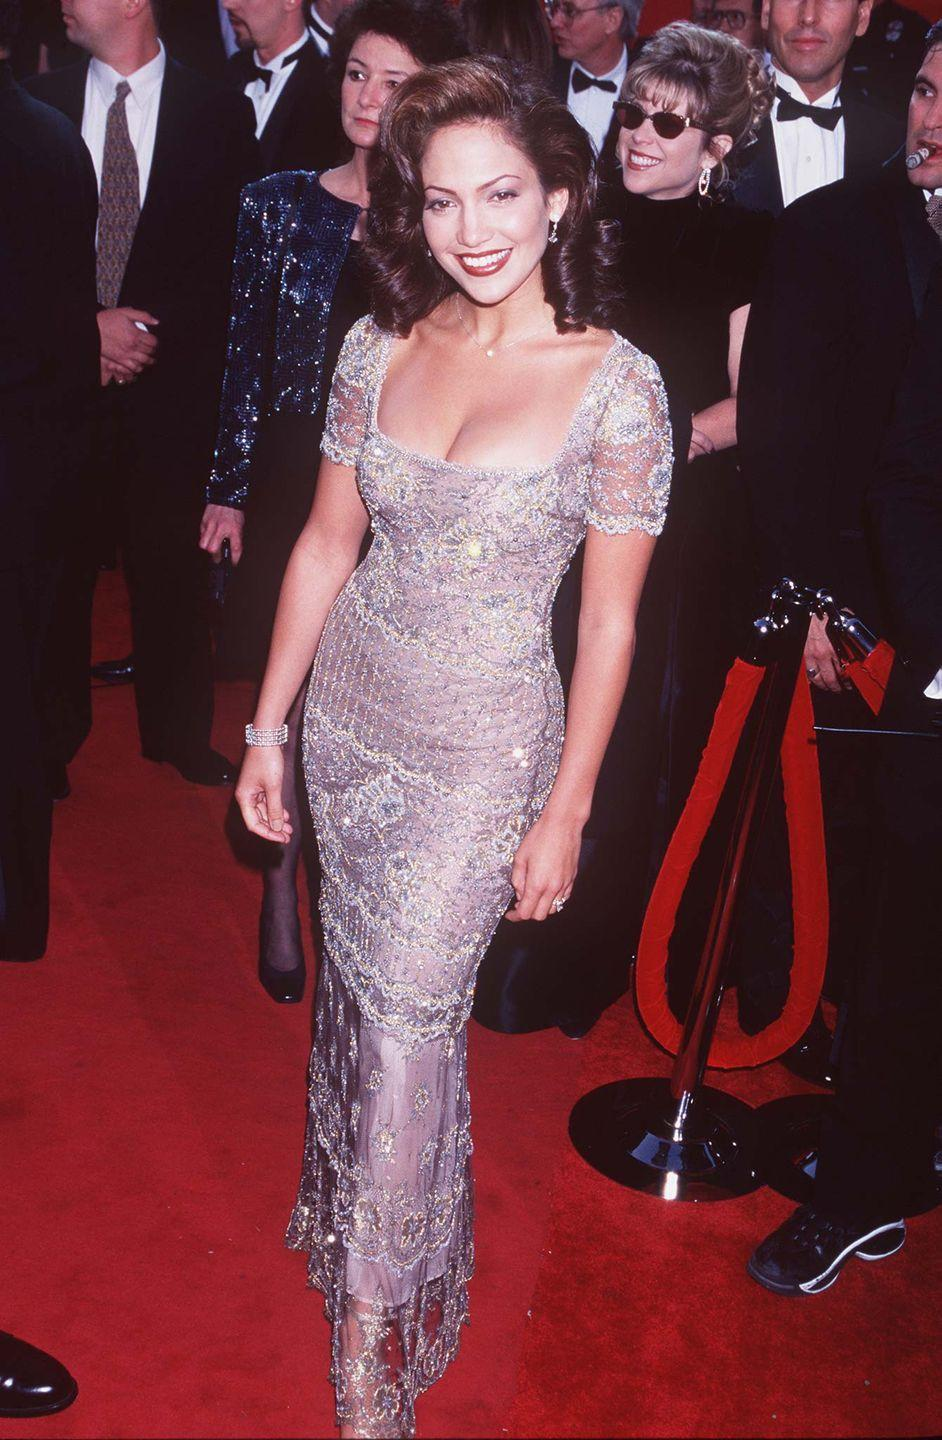 <p>In a sheer embellished dress at the Academy Awards in Los Angeles.</p>